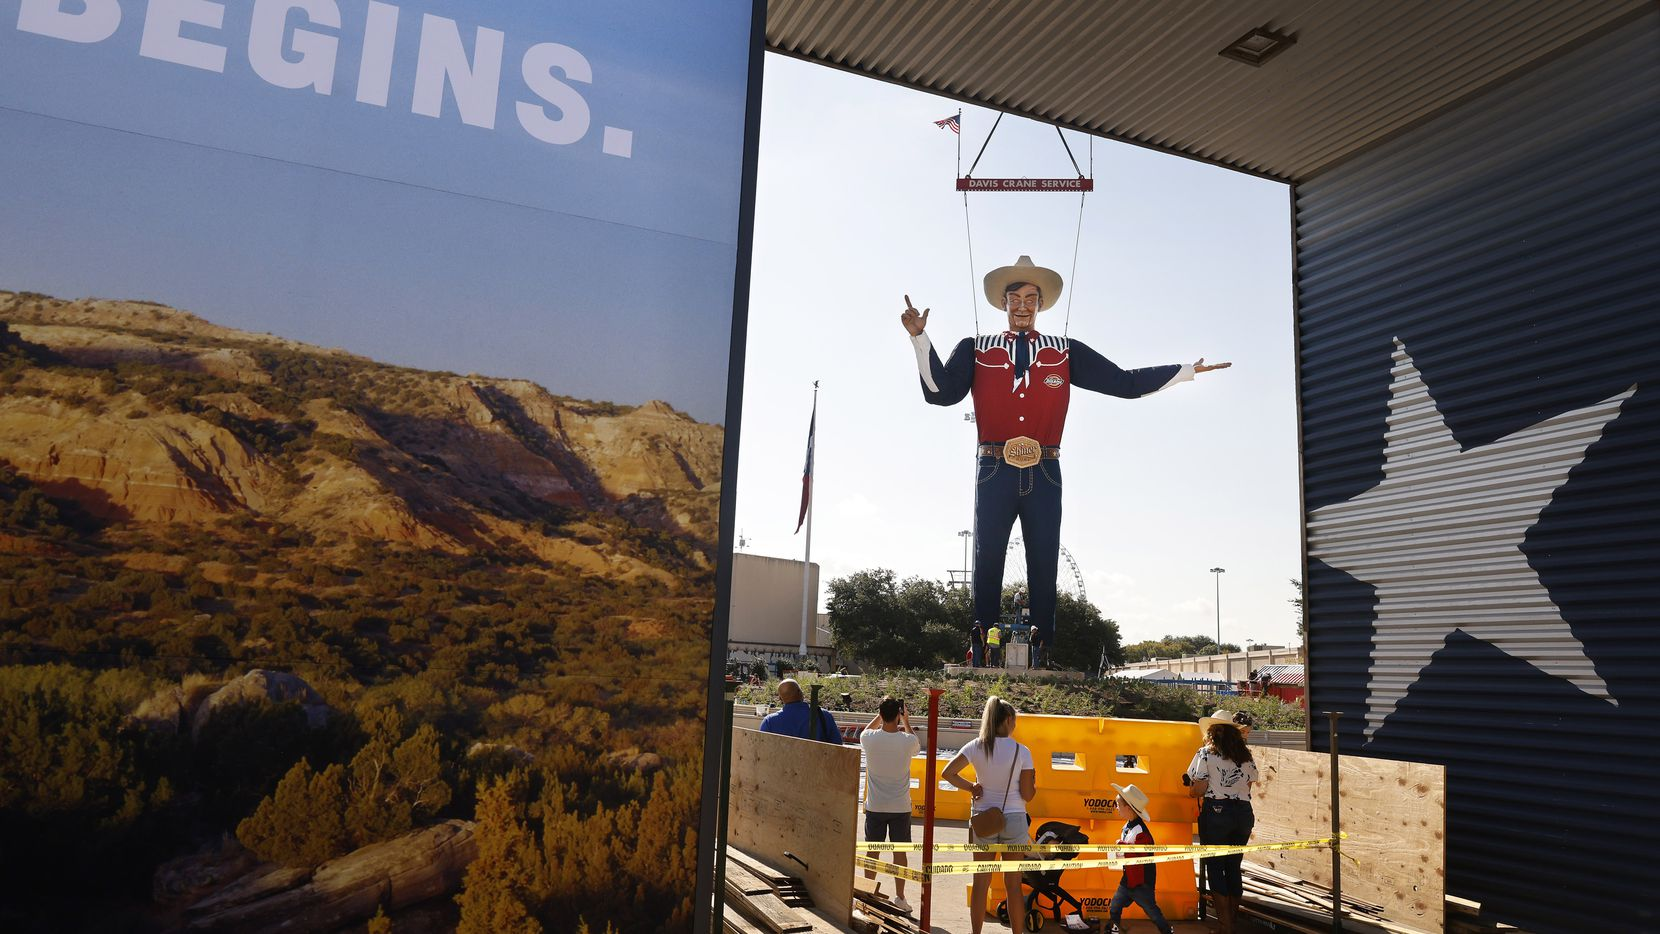 And it begins. Big Tex was lifted and set into place atop Big Tex Circle at the State Fair of Texas, Friday, September 17, 2021. The fair opens to the public next Friday.